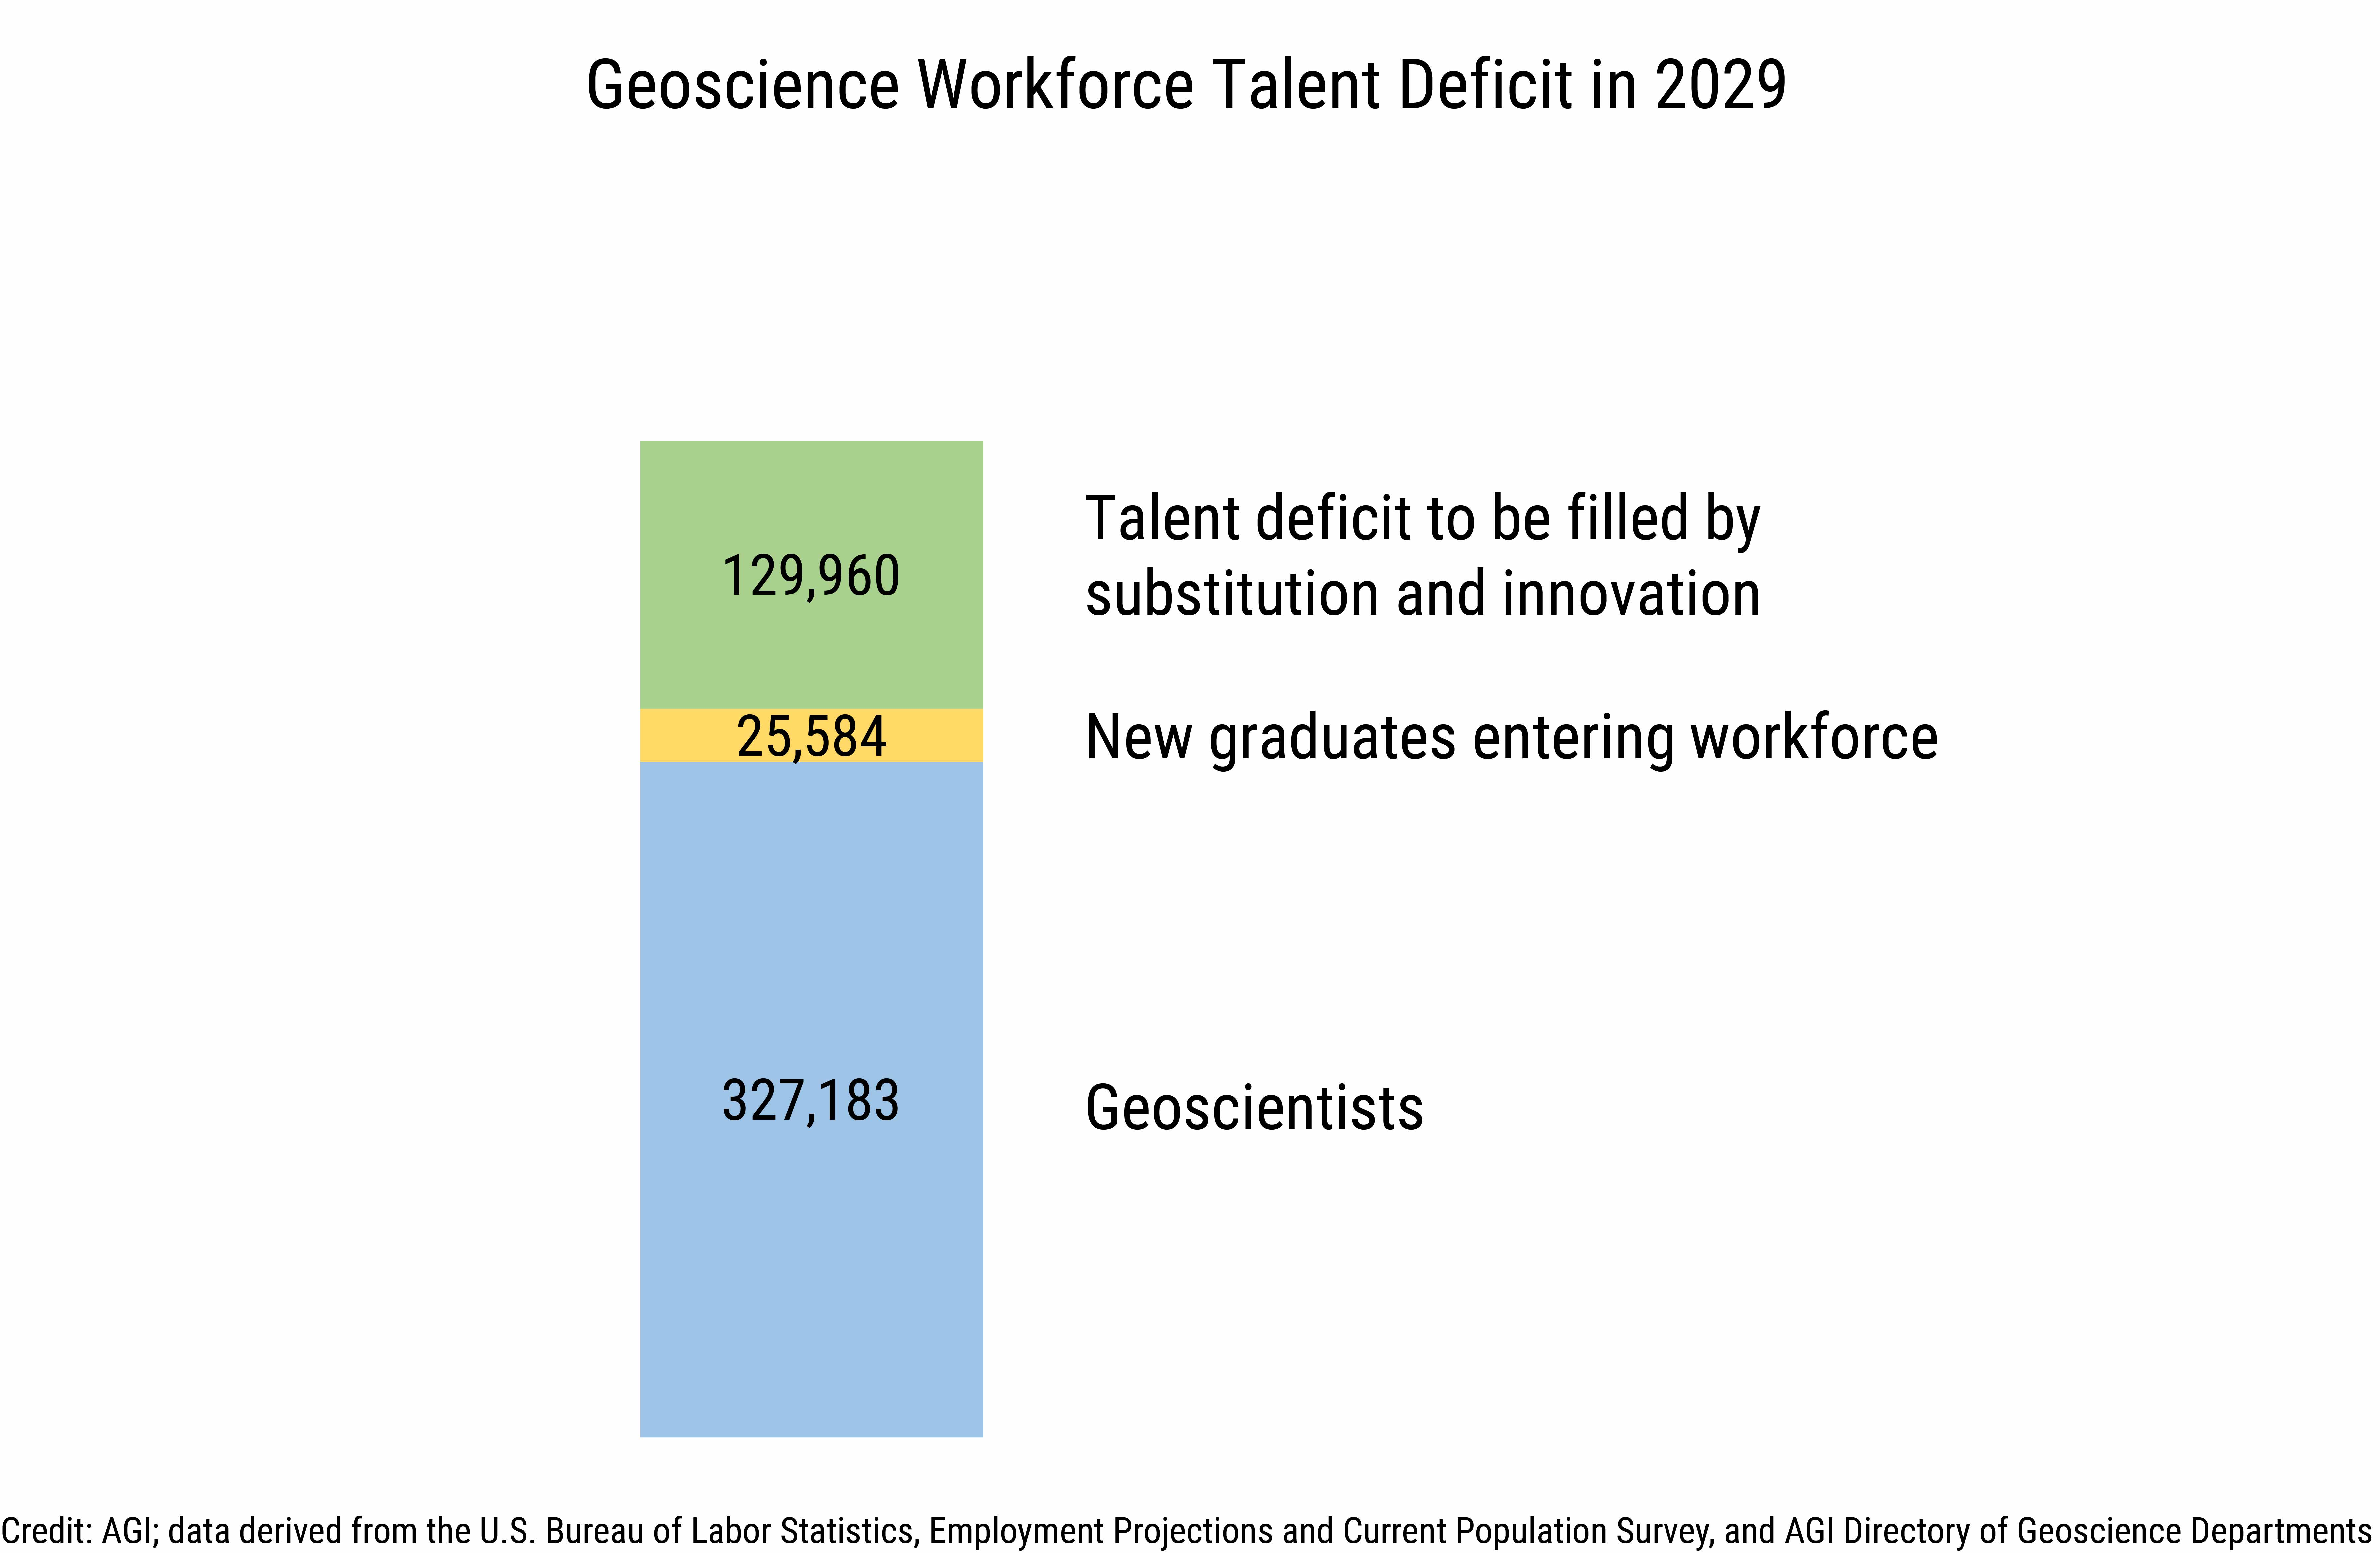 DB2020-025 chart 03: Geoscience Workforce Talent Deficit in 2029 (Credit: AGI; data derived from the U.S. Bureau of Labor Statistics, Employment Projections and Current Population Survey, and from AGI's Directory of Geoscience Departments)